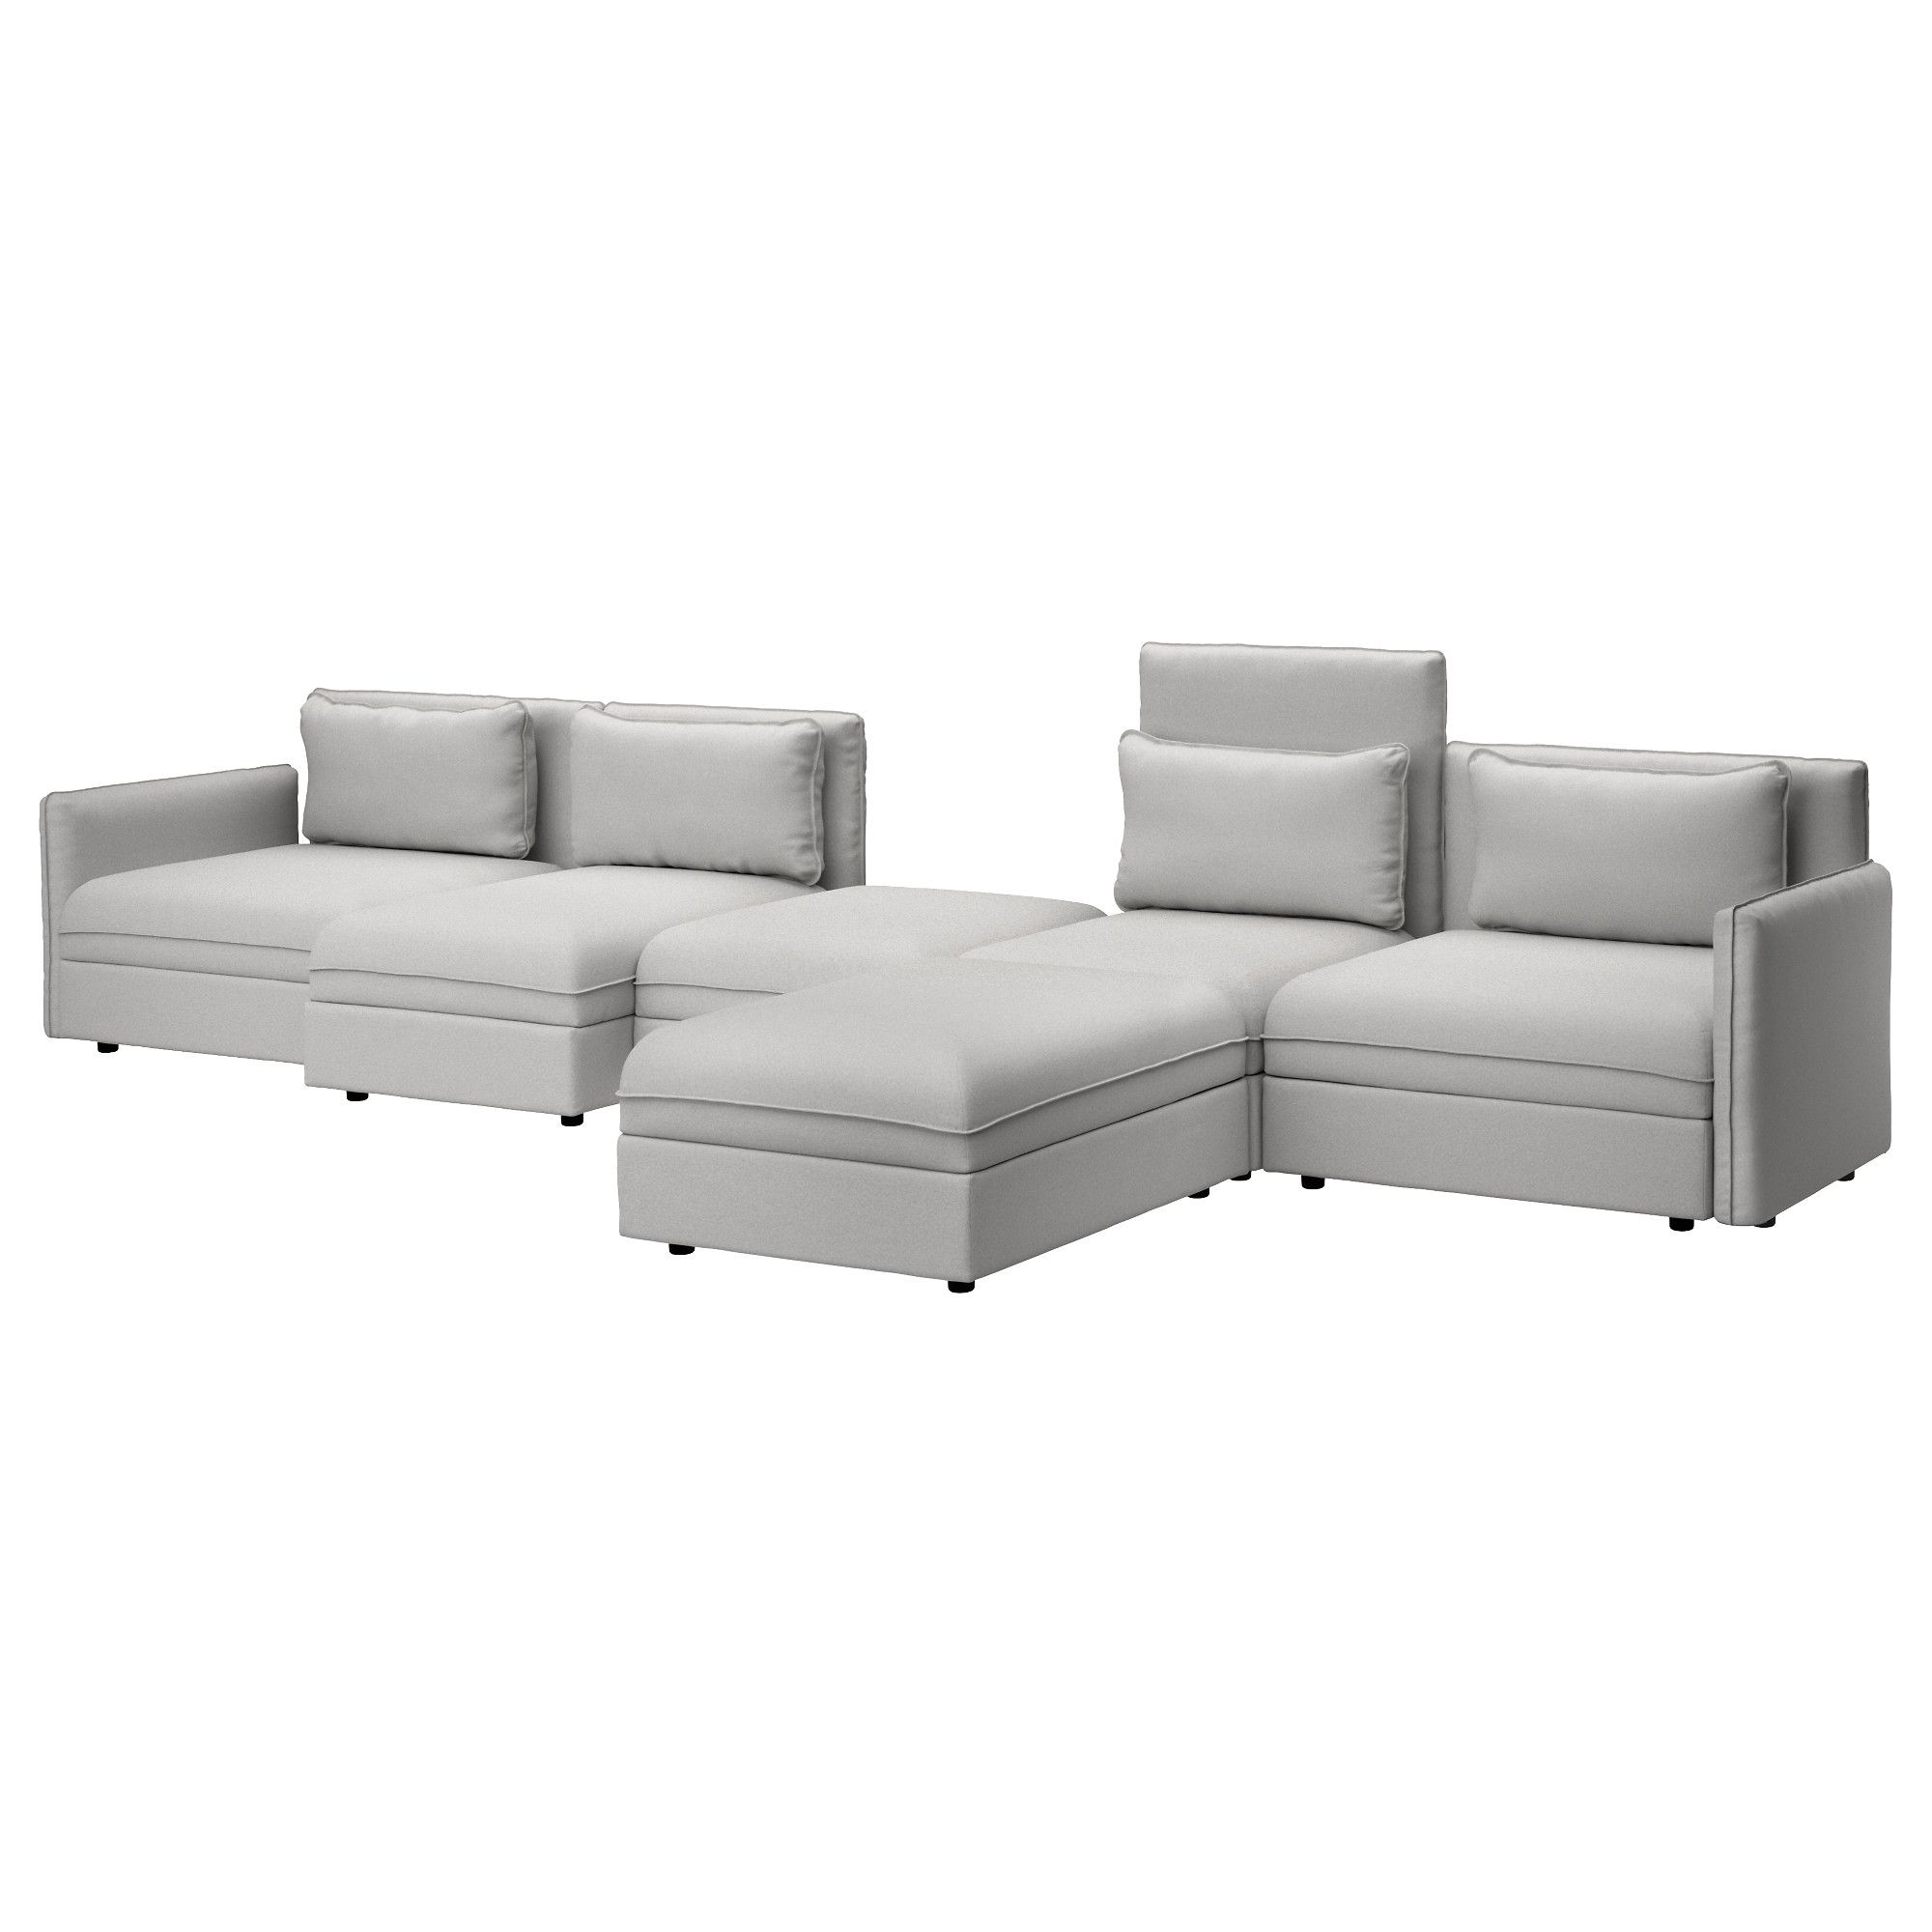 IKEA VALLENTUNA Sofa Ramna Dark Beige Add, Remove Or Change Functions To  Suit Your Needs, And Choose Covers To Fit Your Style.